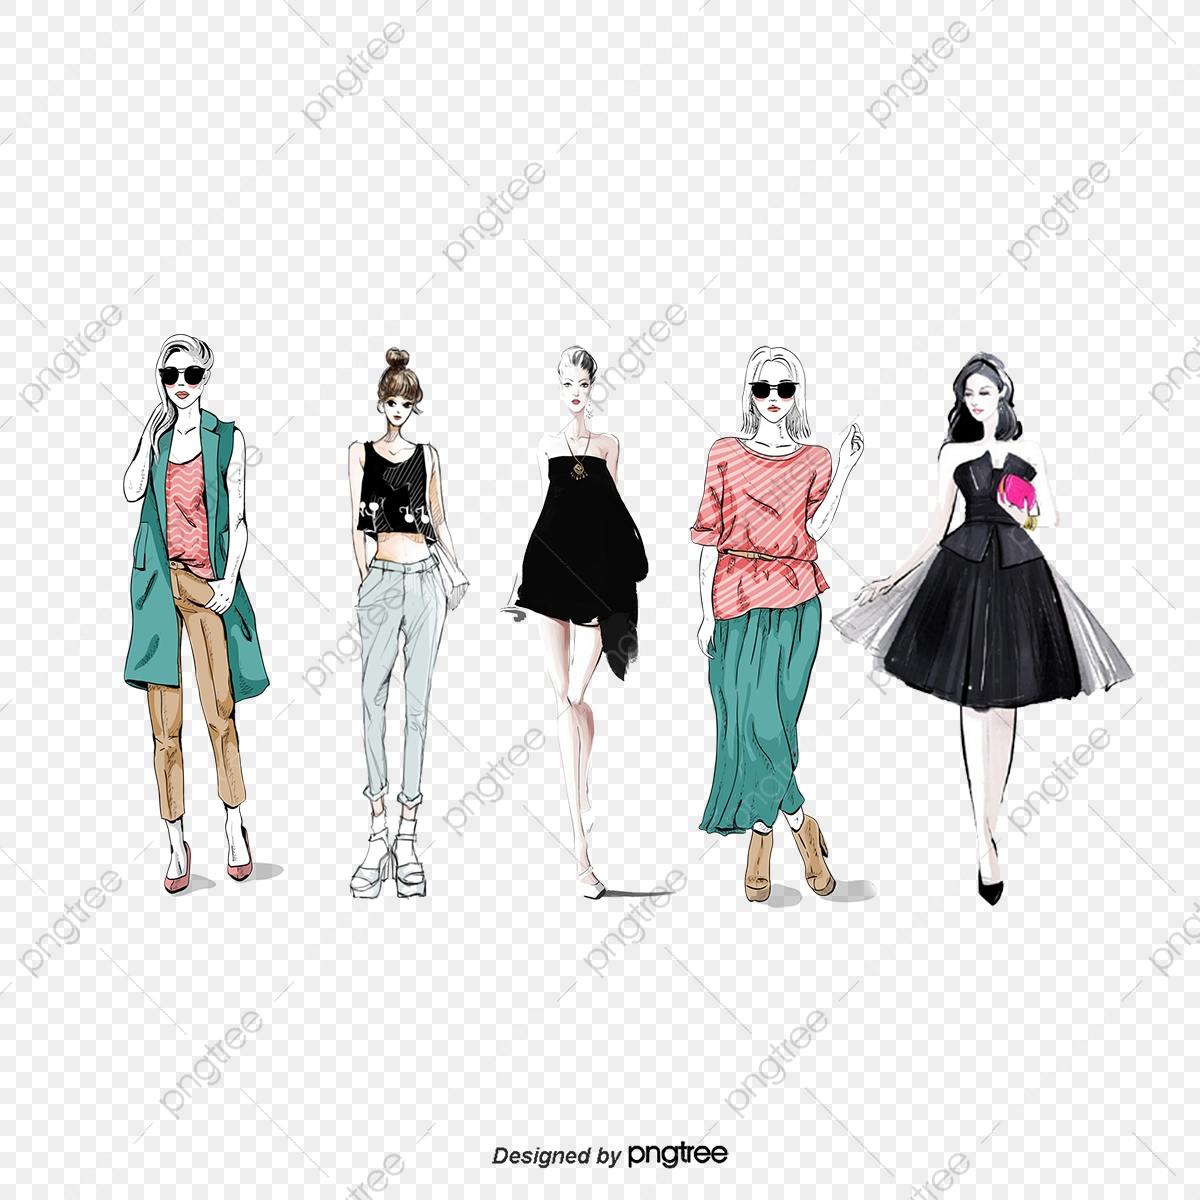 Fashion Design Fashion Vector Vector Clothing Png Transparent Clipart Image And Psd File For Free Download